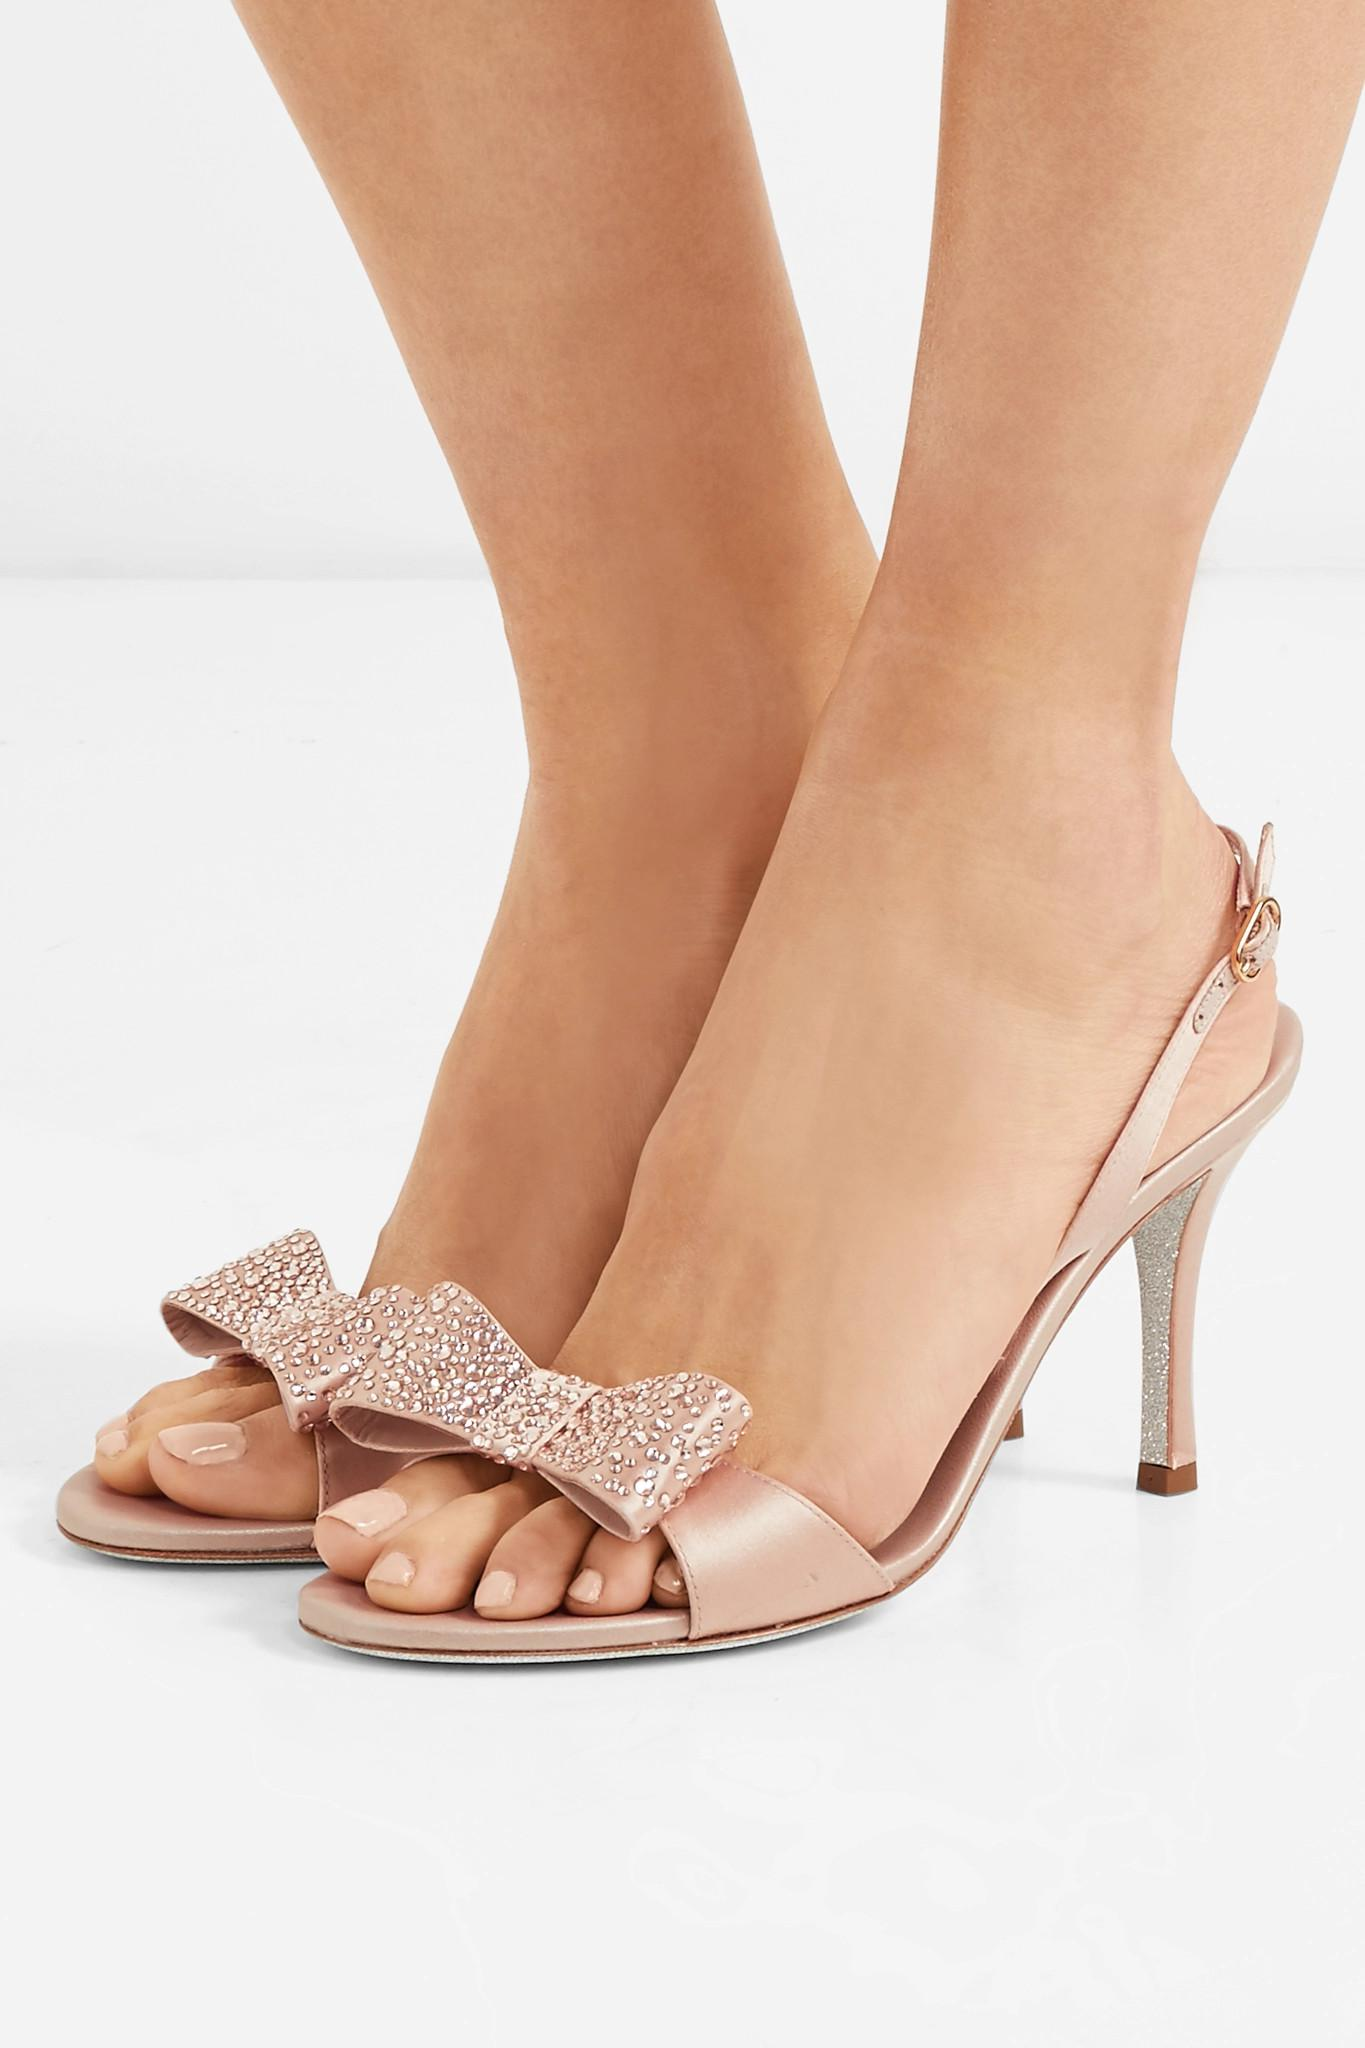 Crystal And Bow-embellished Satin Sandals - Neutral Rene Caovilla Outlet With Paypal Free Shipping Best Place Dszzc